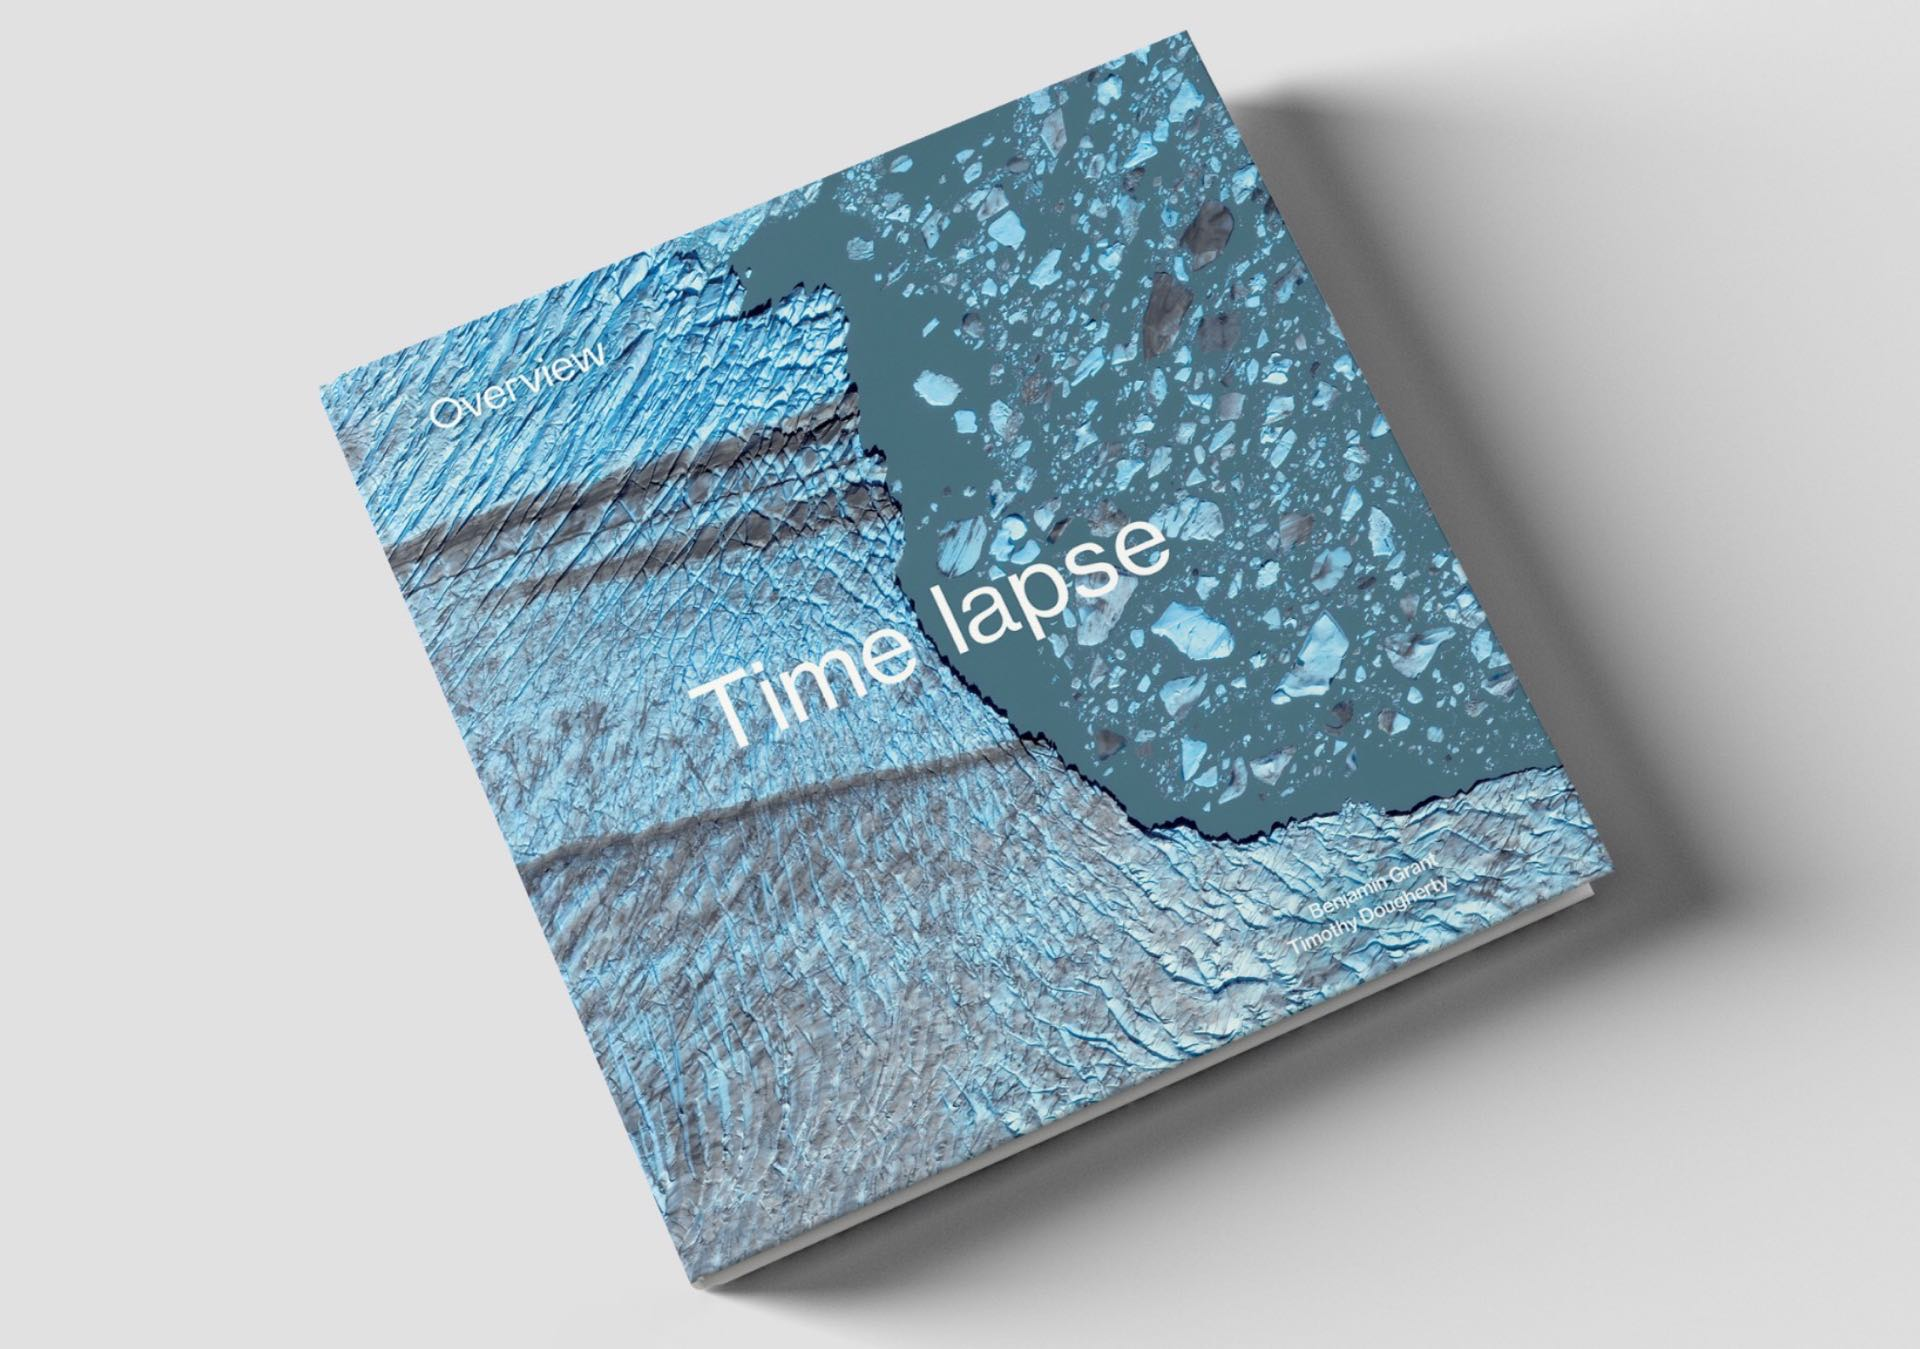 overview-timelapse-coffee-table-book-benjamin-grant-timothy-dougherty